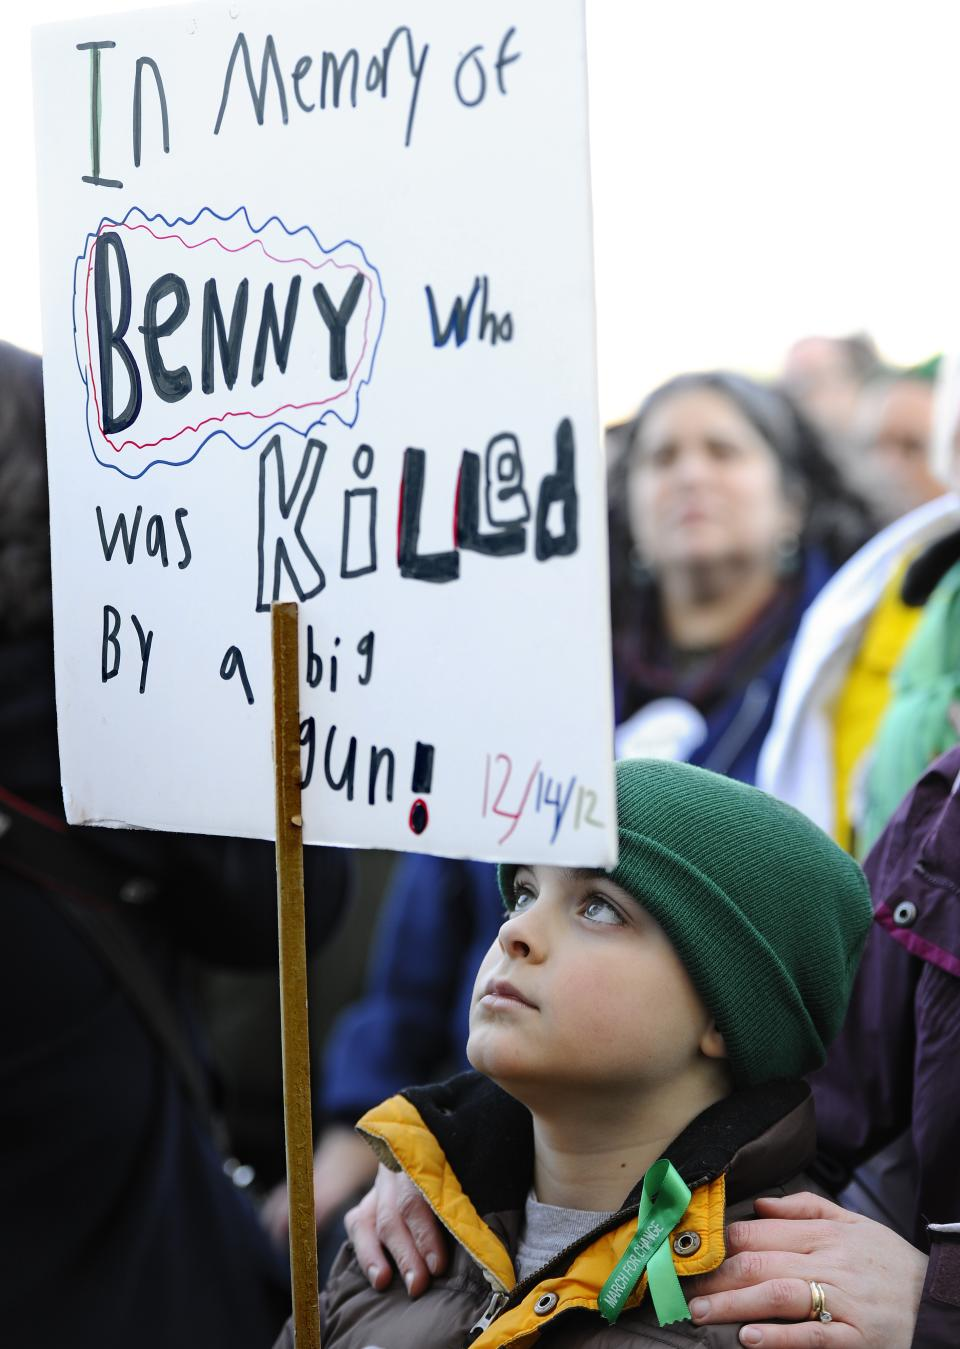 Camron Brant holds a sign during a rally at the Capitol in Hartford, Conn., Thursday, Feb. 14, 2013. Thousands of people turned out to call on lawmakers to toughen gun laws in light of the December elementary school shooting in Newtown that left 26 students and educators dead. (AP Photo/Jessica Hill)